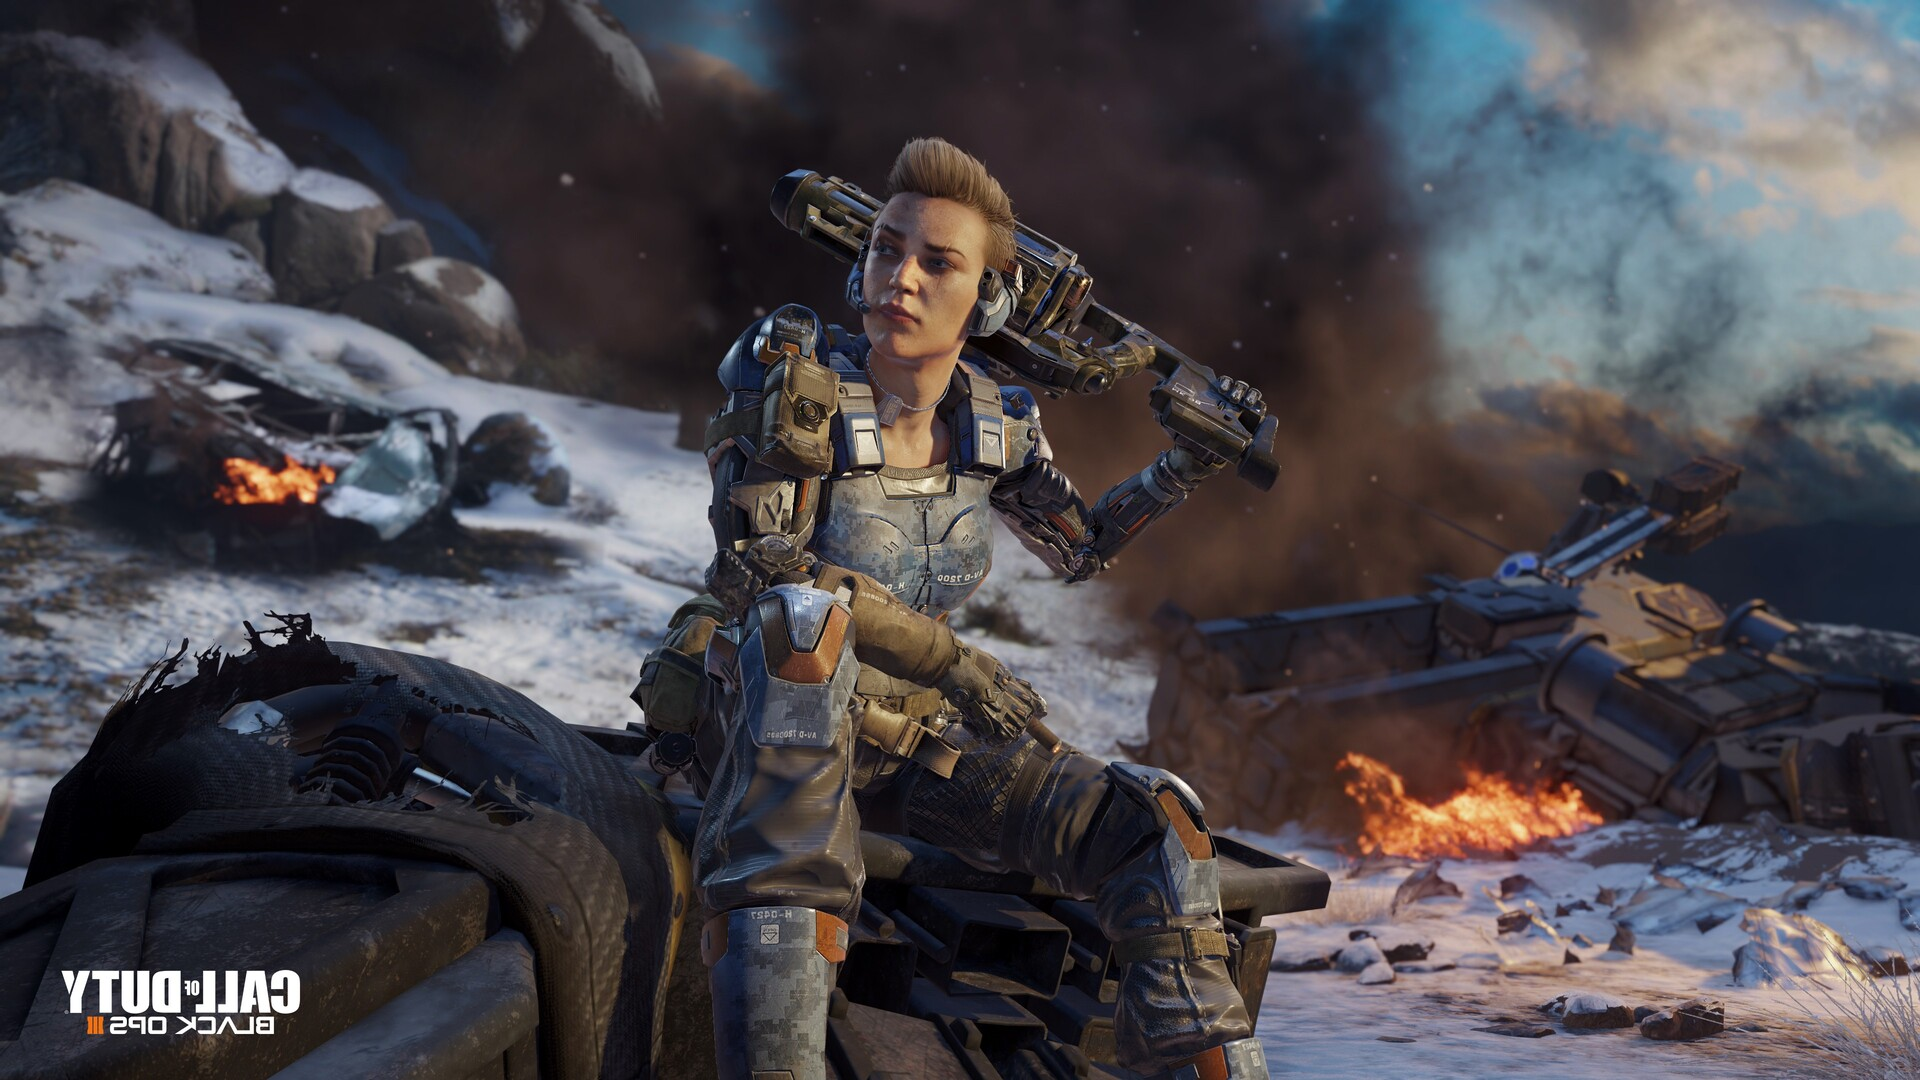 Cod Black Ops 3 Wallpaper: 1920x1080 Call Of Duty Black Ops 3 Game Laptop Full HD